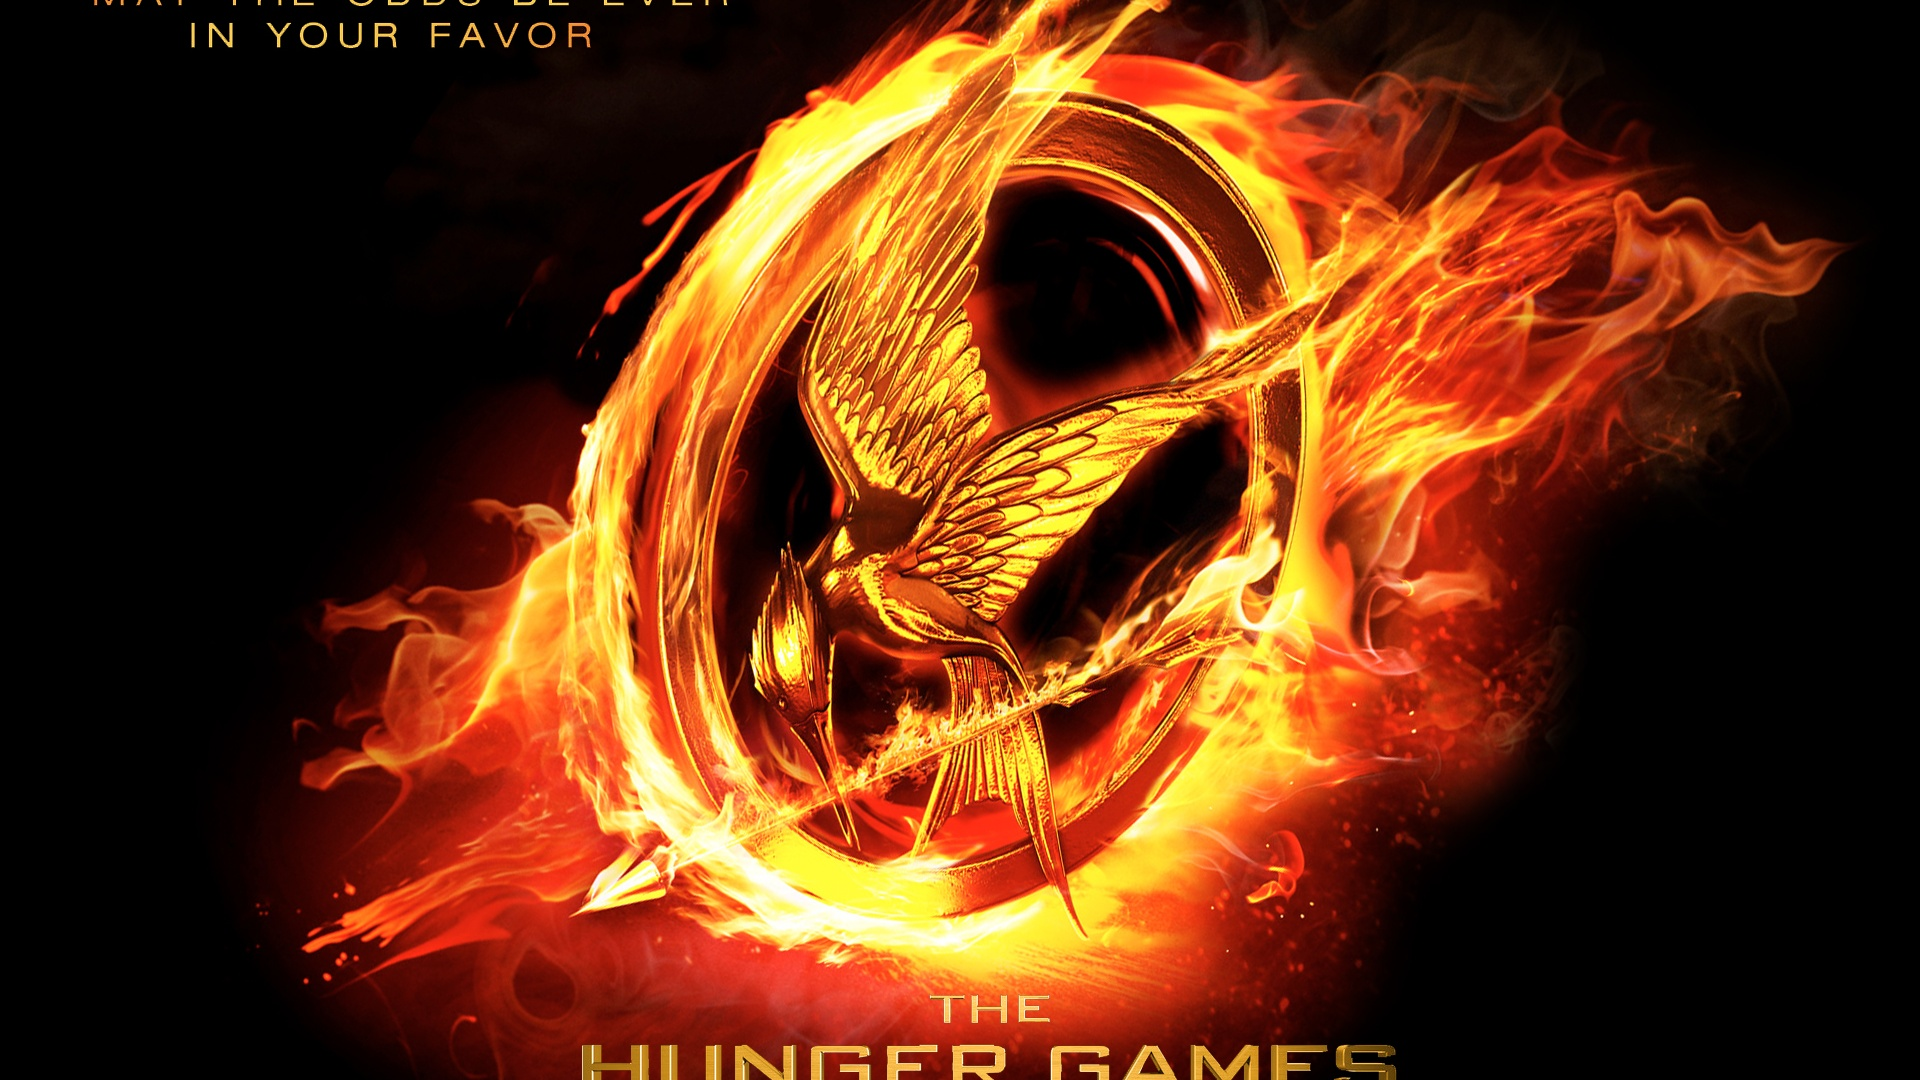 The Hunger Games 640x1136 Iphone 5 5s 5c Se Wallpaper